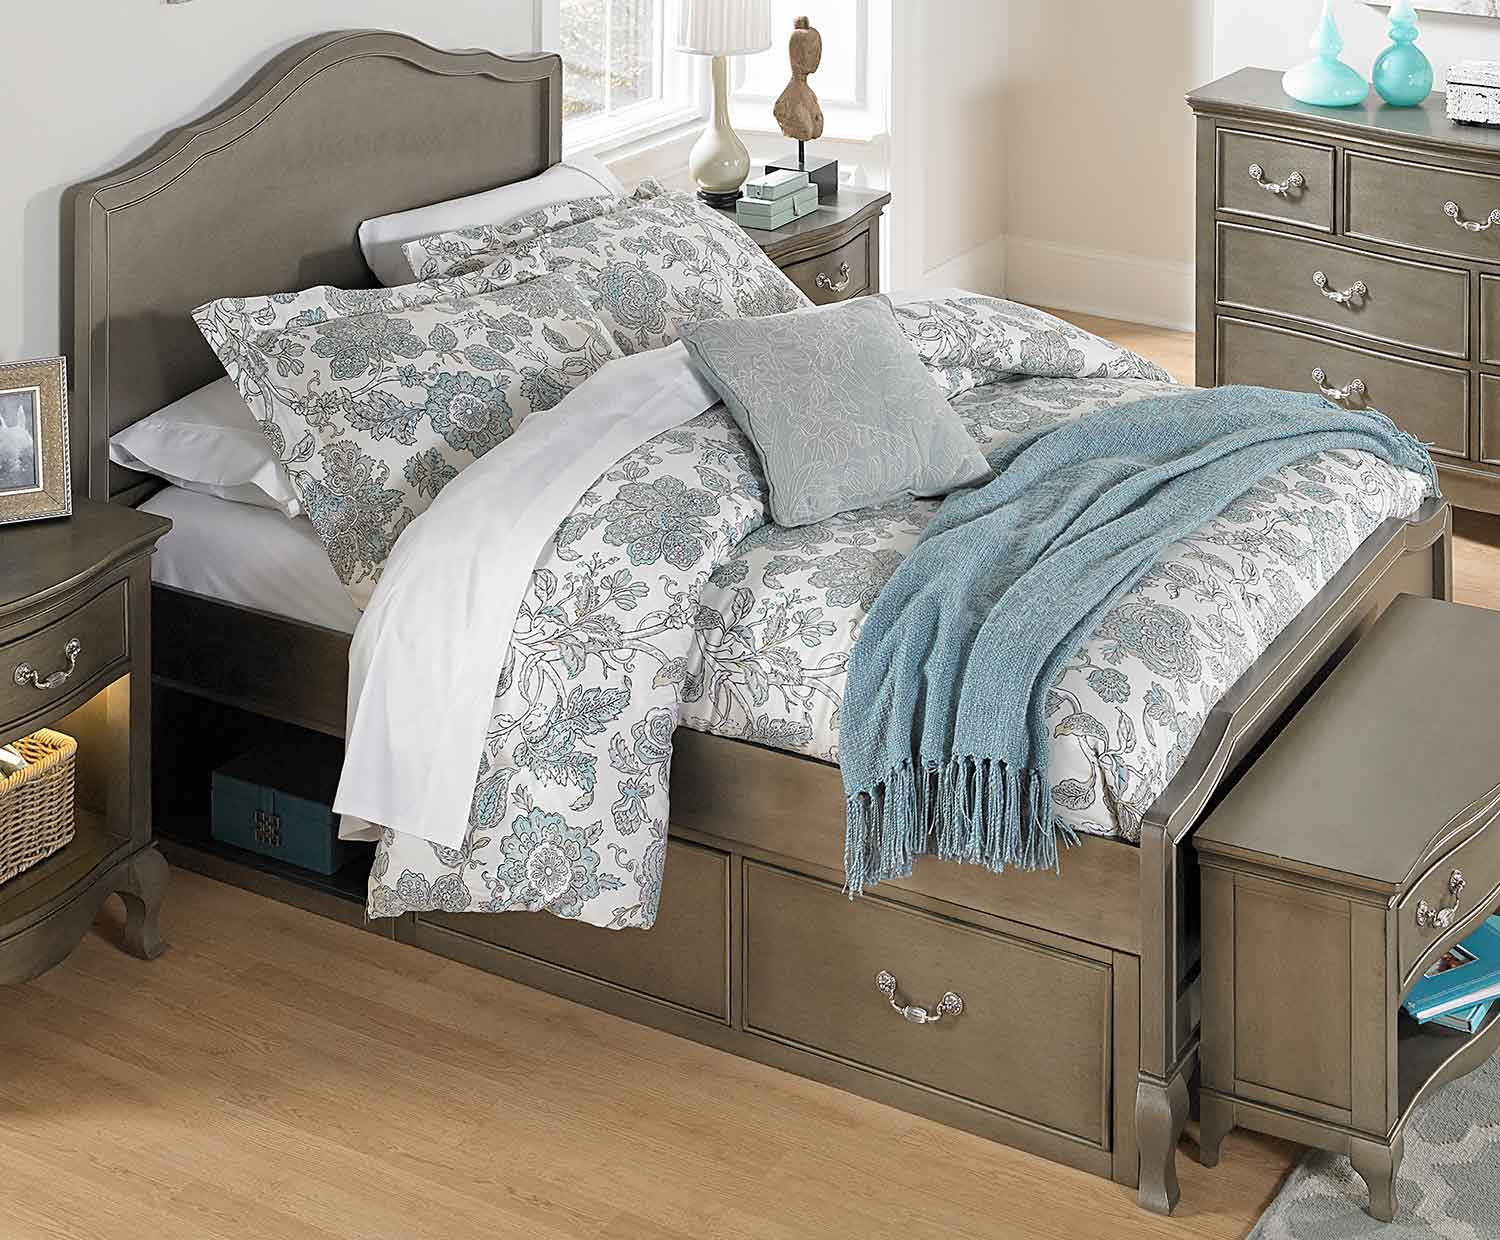 NE Kids Kensington Charlotte Panel Bed With Storage - Antique Silver